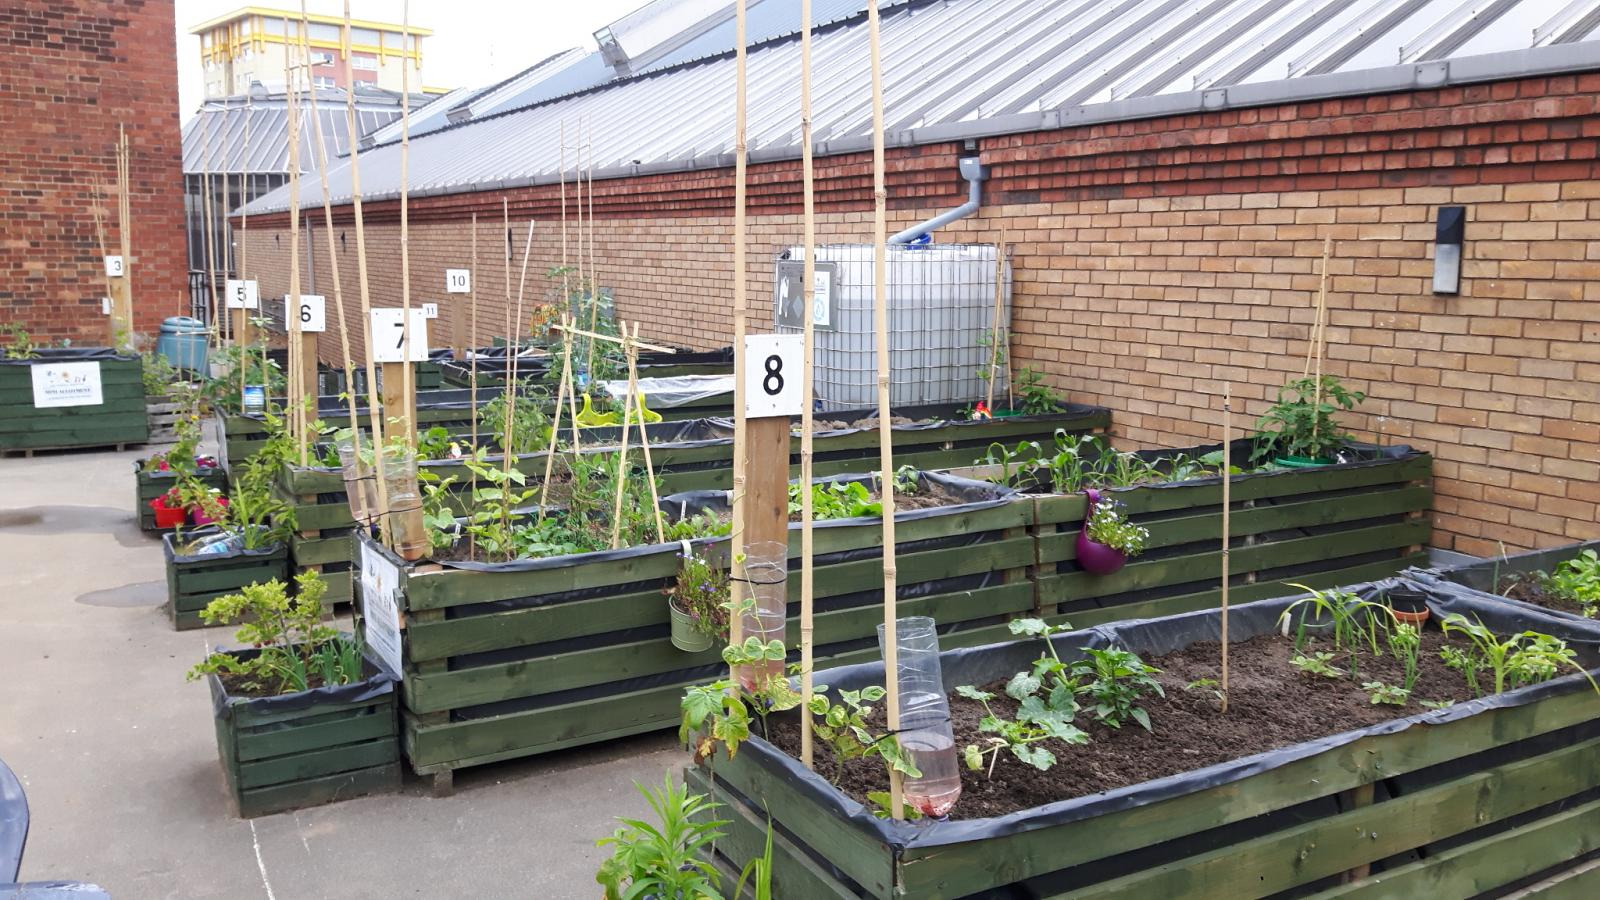 One of the Grow Wakefield sites, credit: Grow Wakefield